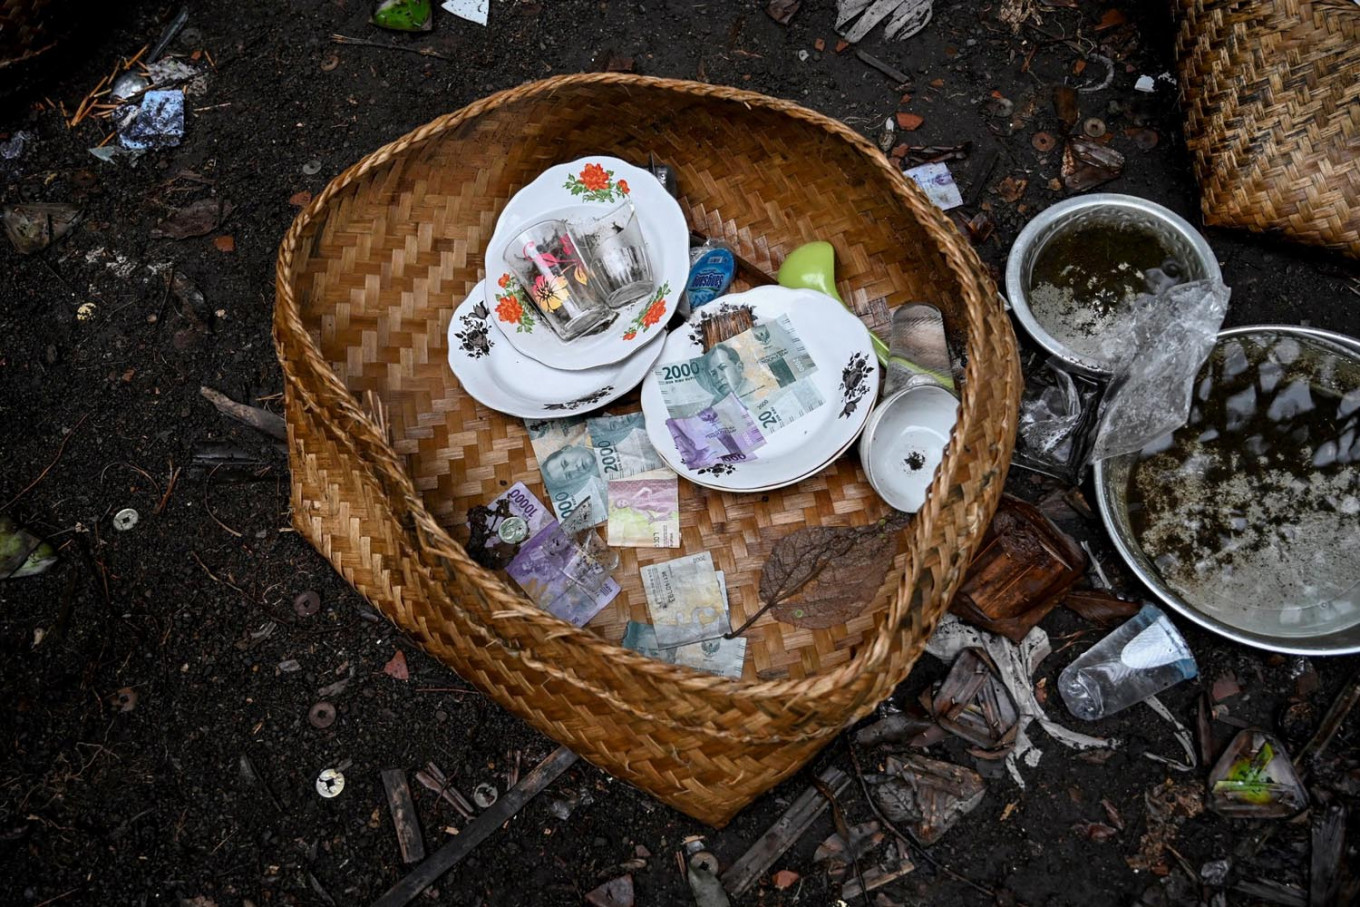 This picture taken on February 20, 2020 shows items left from ceremonial offerings for use in the afterlife scattered on the ground at a cemetery where Bali's Trunyanese people hold open-air burials - before restrictions were implemented due to the COVID-19 coronavirus - near the village of Trunyan in Bangli Regency, near Lake Batur on Bali island. - For centuries Bali's Trunyanese people have left their dead to decompose in the open air, the bodies placed in bamboo cages until only the skeletons remain -- a ritual they haven't given up -- even as the COVID-19 pandemic upends burial practices worldwide. AFP/Sonny Tumbelaka